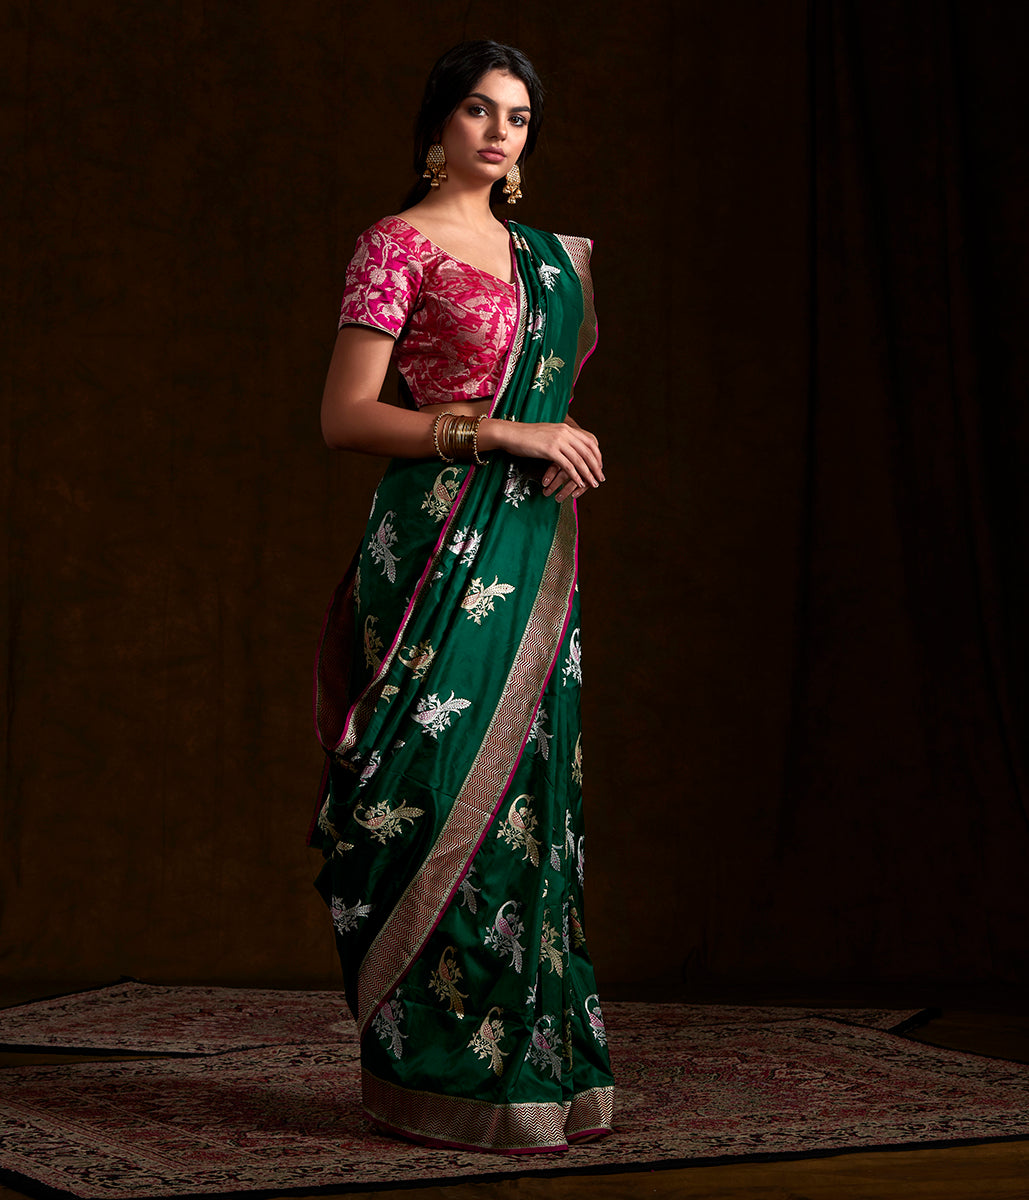 Bottle Green and Gold Kadhwa Banarasi Saree with Intricately Woven Peacock Motifs